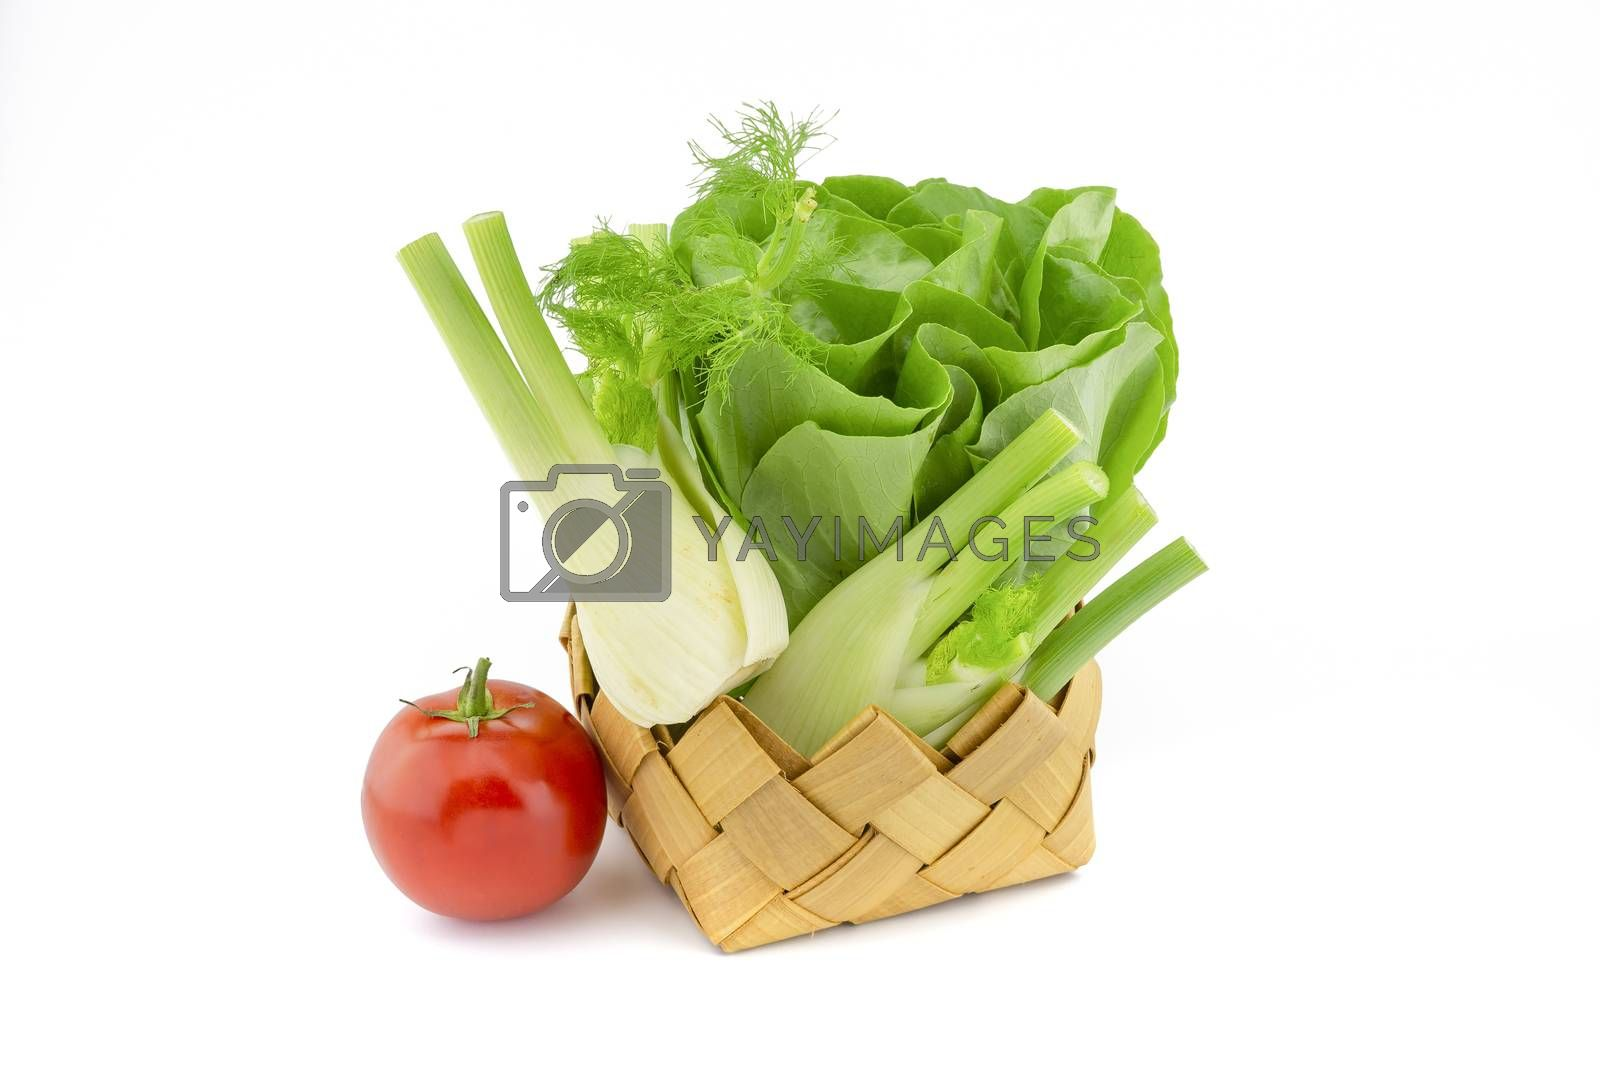 Fresh butter lettuce also known as Boston or Bibb lettuce in rustic woven basket, fennel and tomato over white background